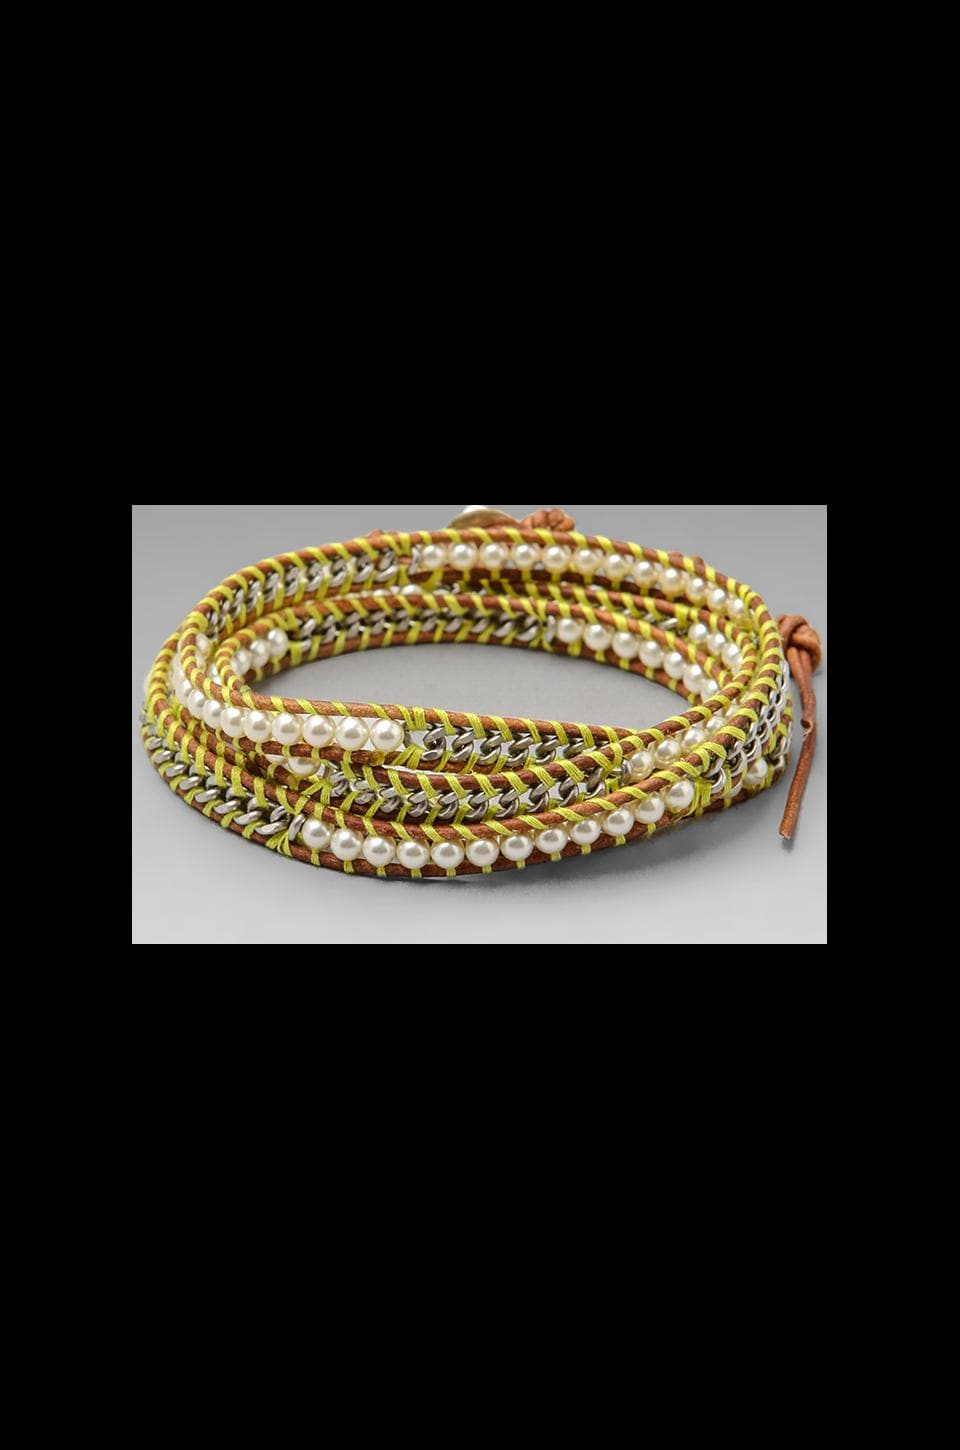 CHAN LUU Threaded Wrap Bracelet in Cream Pearl/Natural Brown